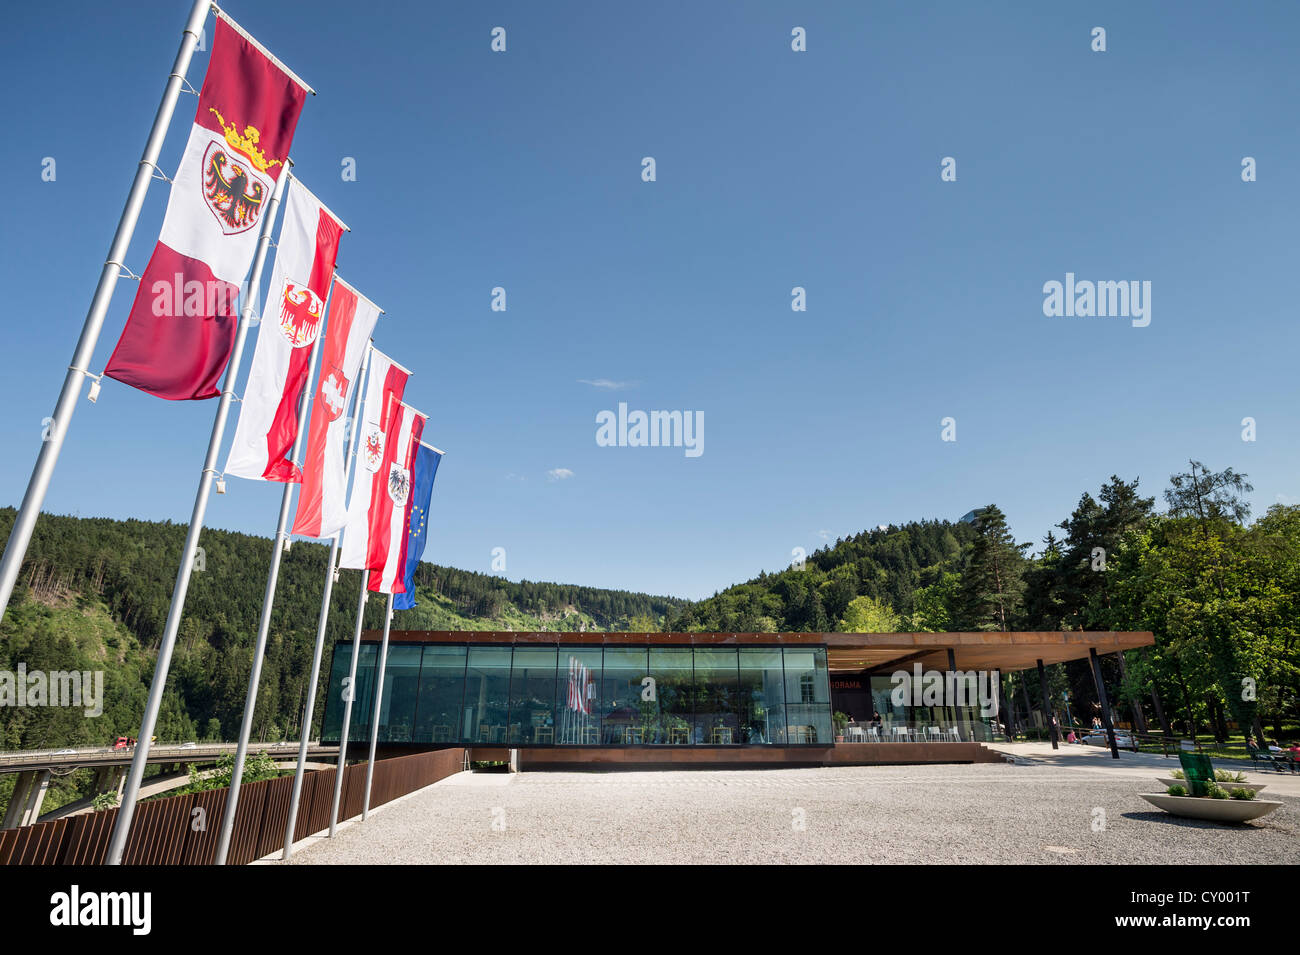 Flags and forecourt of the 'Tirol Panorama' Museum at Bergisel, Innsbruck, Tyrol, Austria, Europe - Stock Image